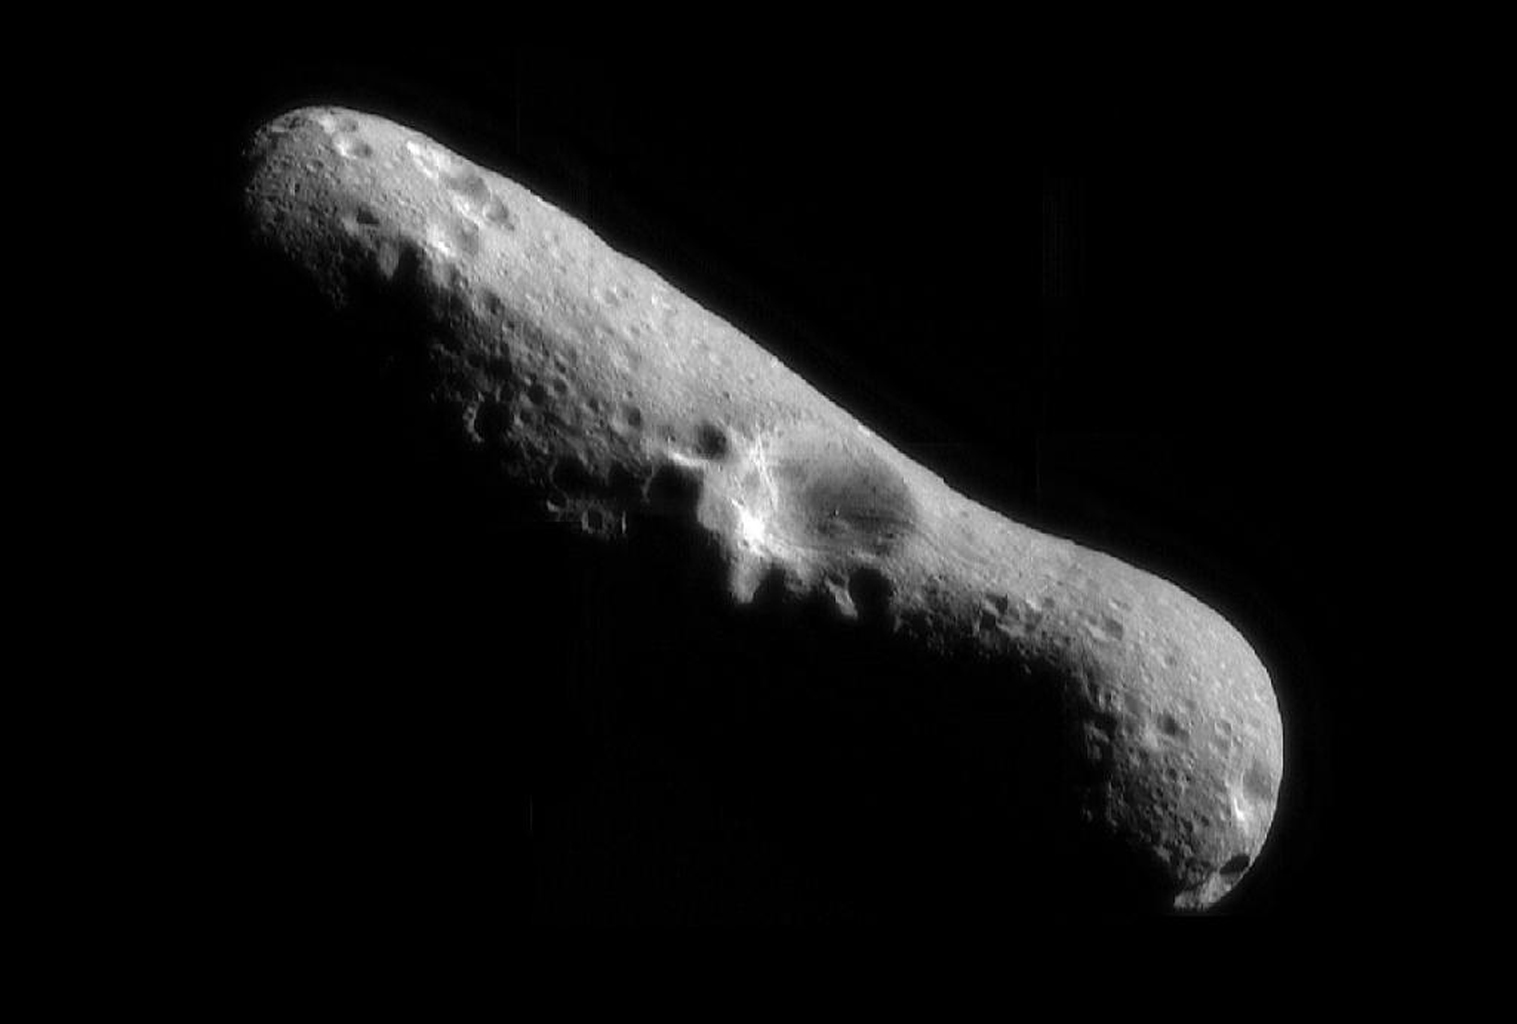 This image of Eros, looking down over the north pole at one of its largest craters, was the first of an asteroid taken from an orbiting spacecraft, obtained by NASA's NEAR Shoemaker on Feb 14, 2000, immediately after the spacecraft's insertion into orbit.